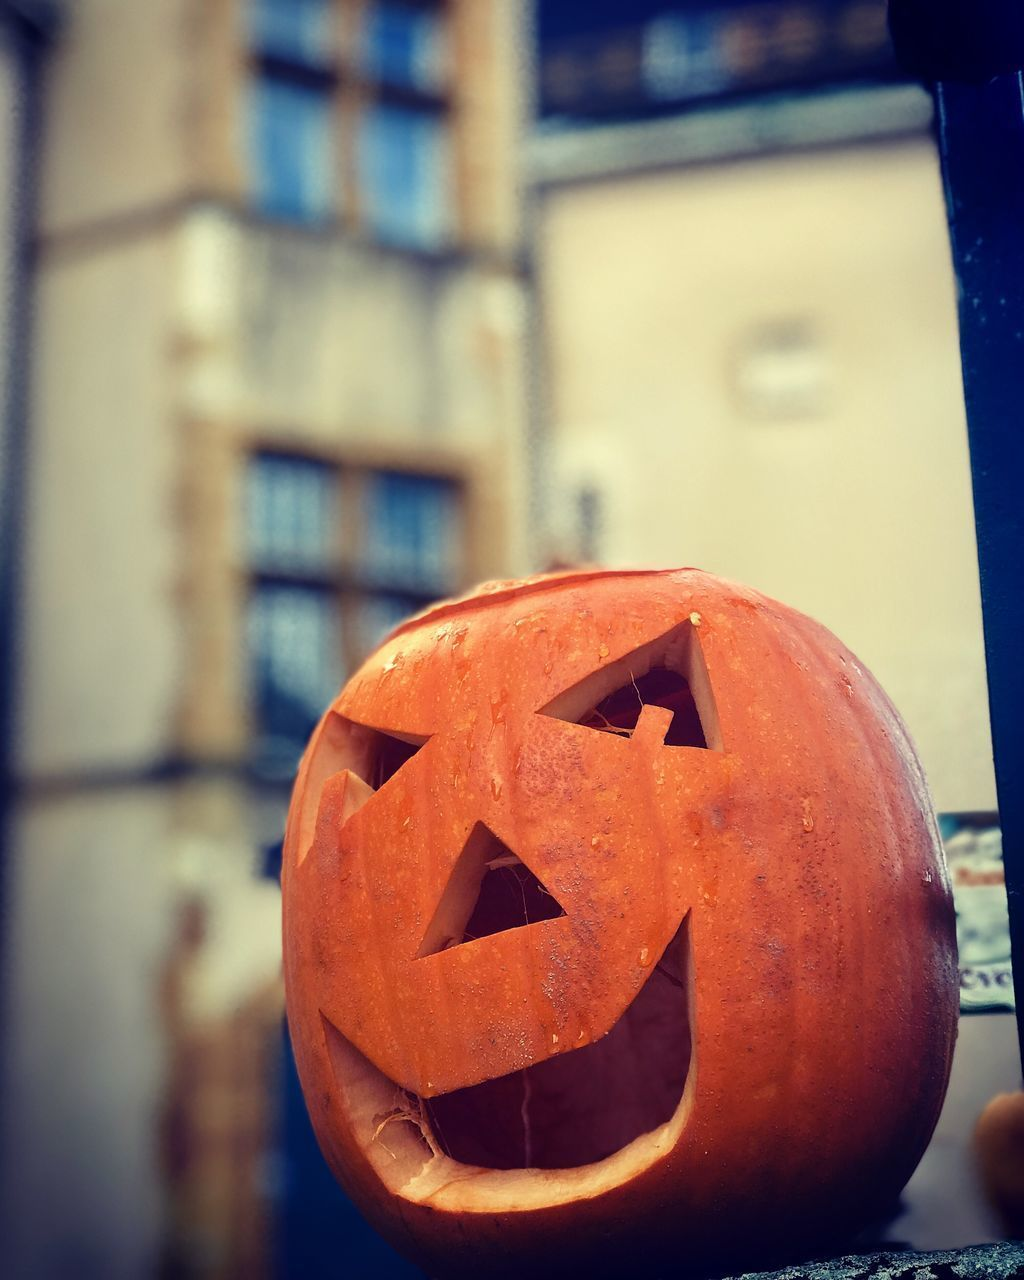 halloween, pumpkin, orange color, jack o' lantern, art and craft, food and drink, anthropomorphic, anthropomorphic face, creativity, face, focus on foreground, food, craft, celebration, no people, architecture, close-up, illuminated, building exterior, outdoors